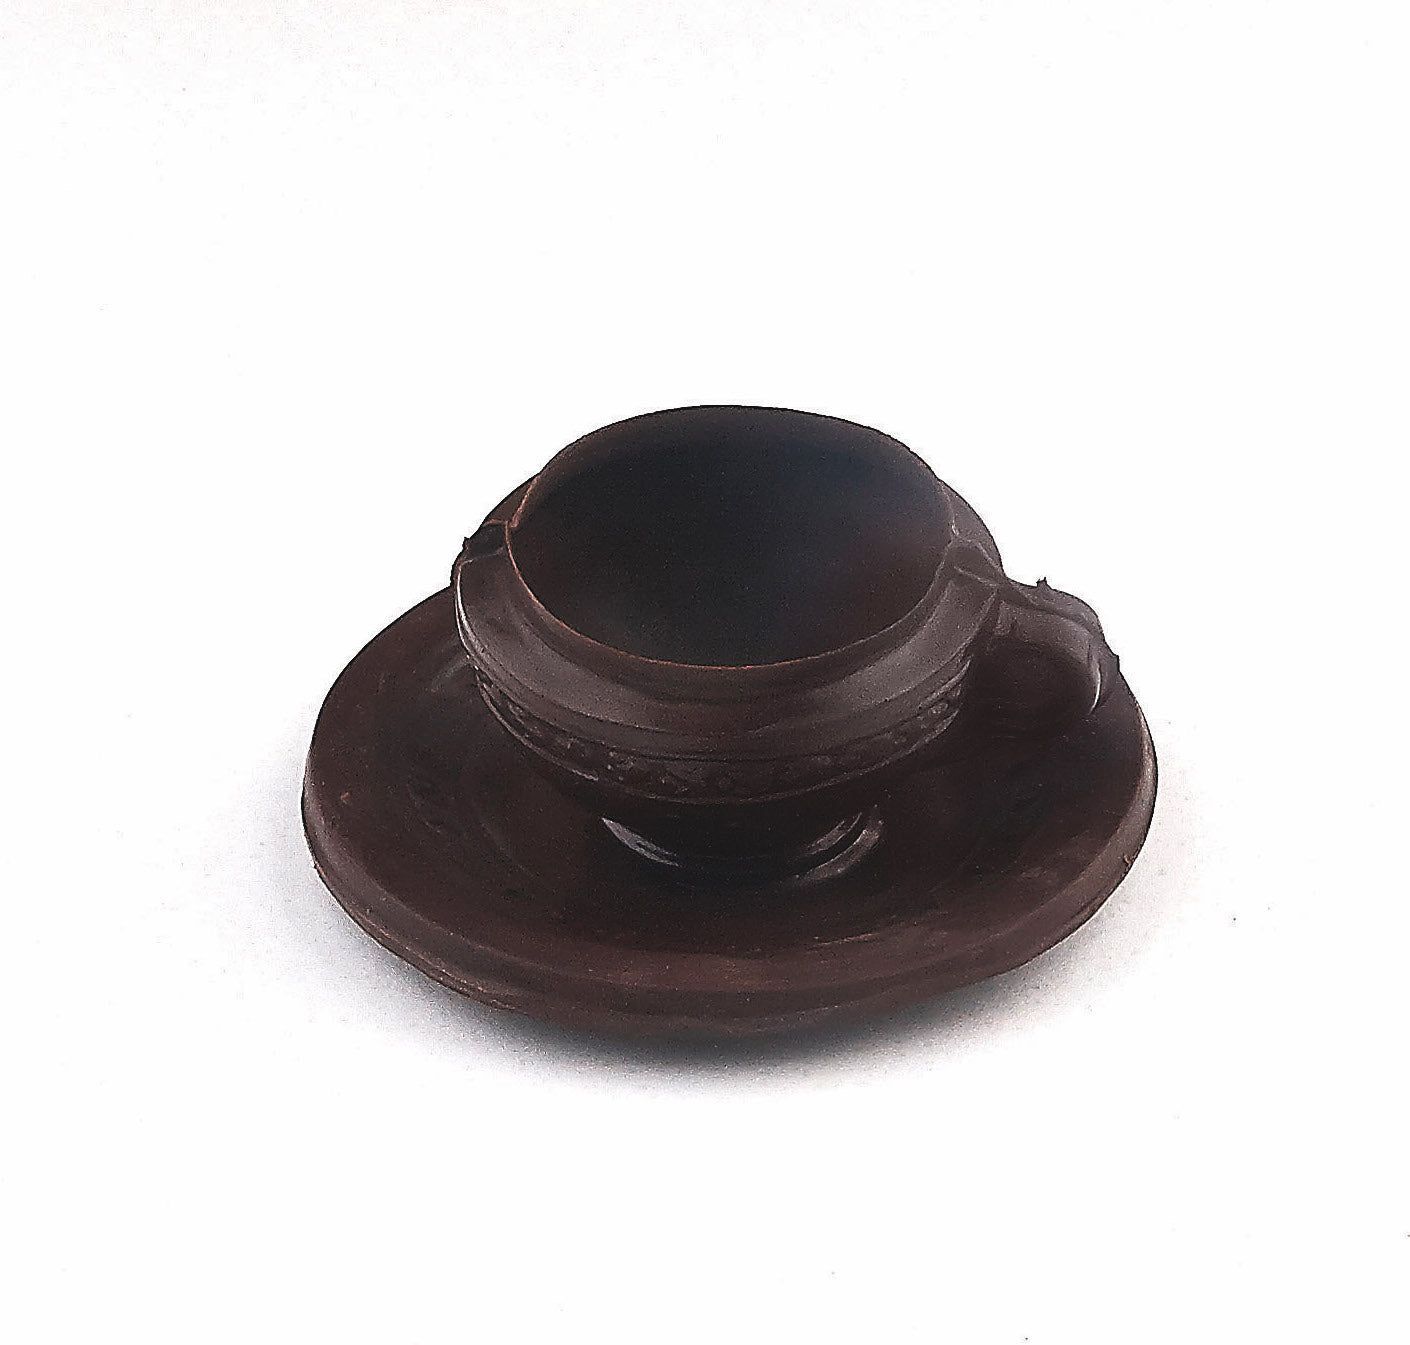 Large Chocolate Coffee Cup